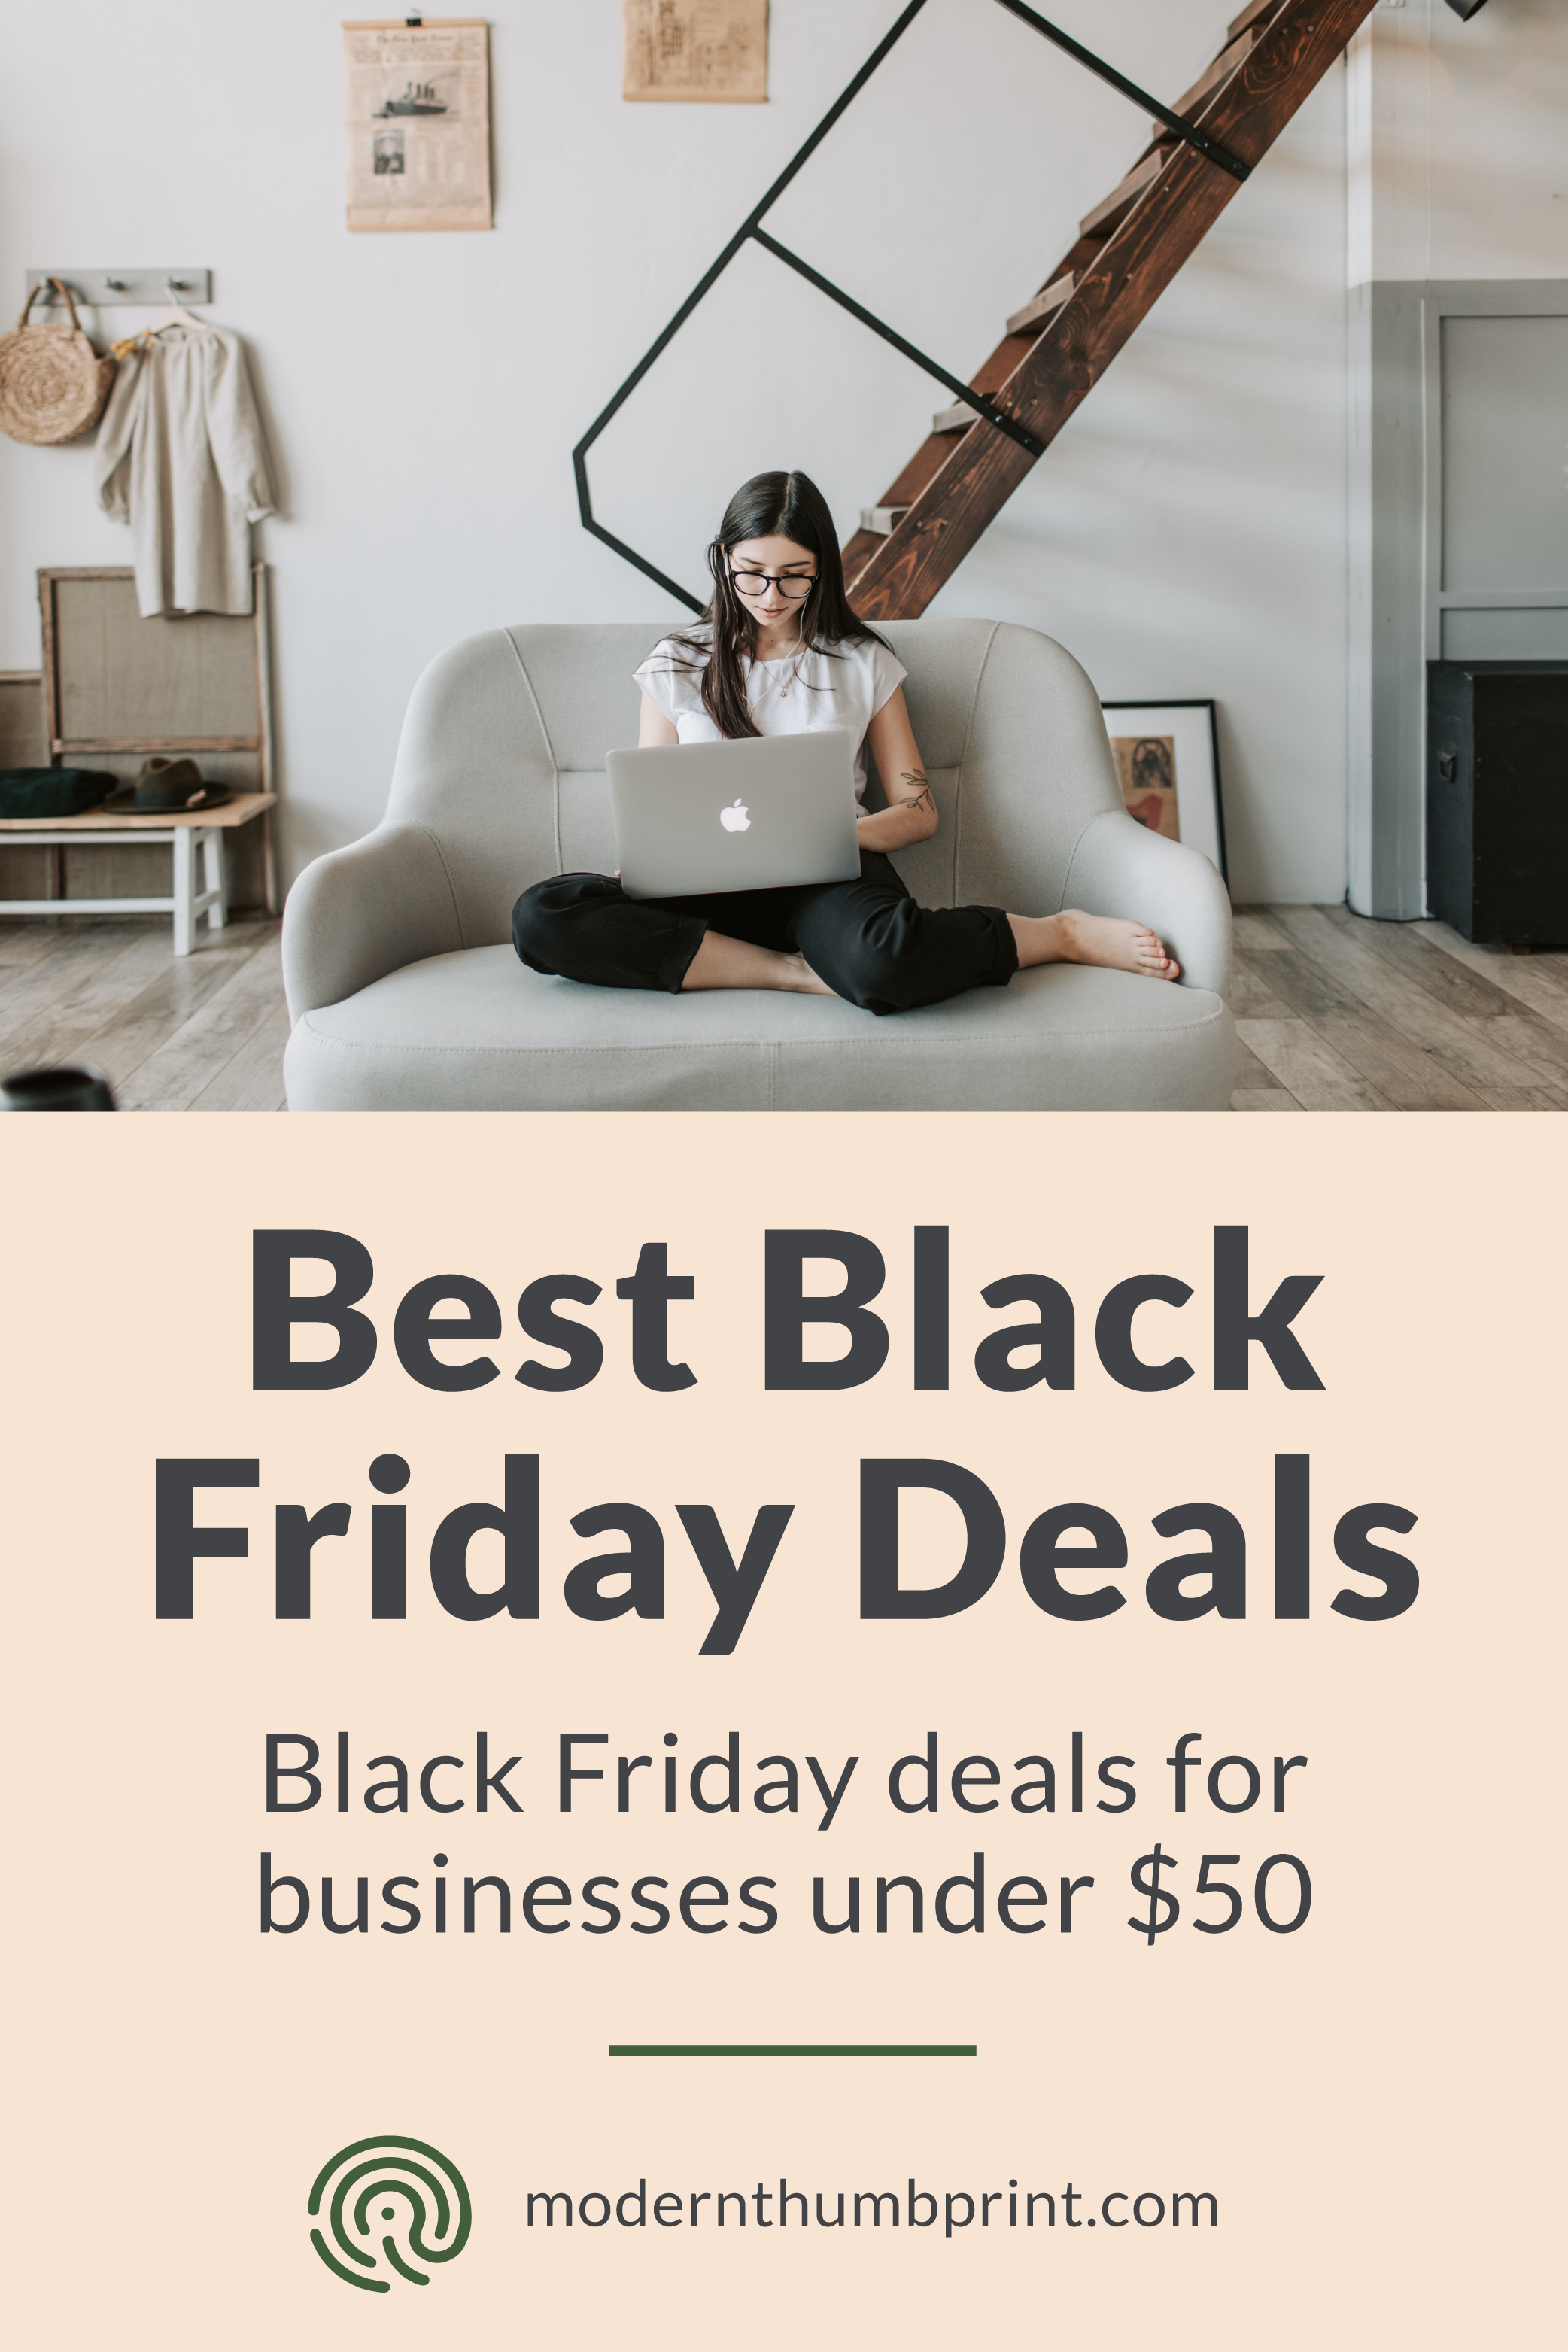 Best Black Friday Items And Programs To Grow Your Small Business For Under 50 In 2020 Best Black Friday Small Business Creative Business Owner